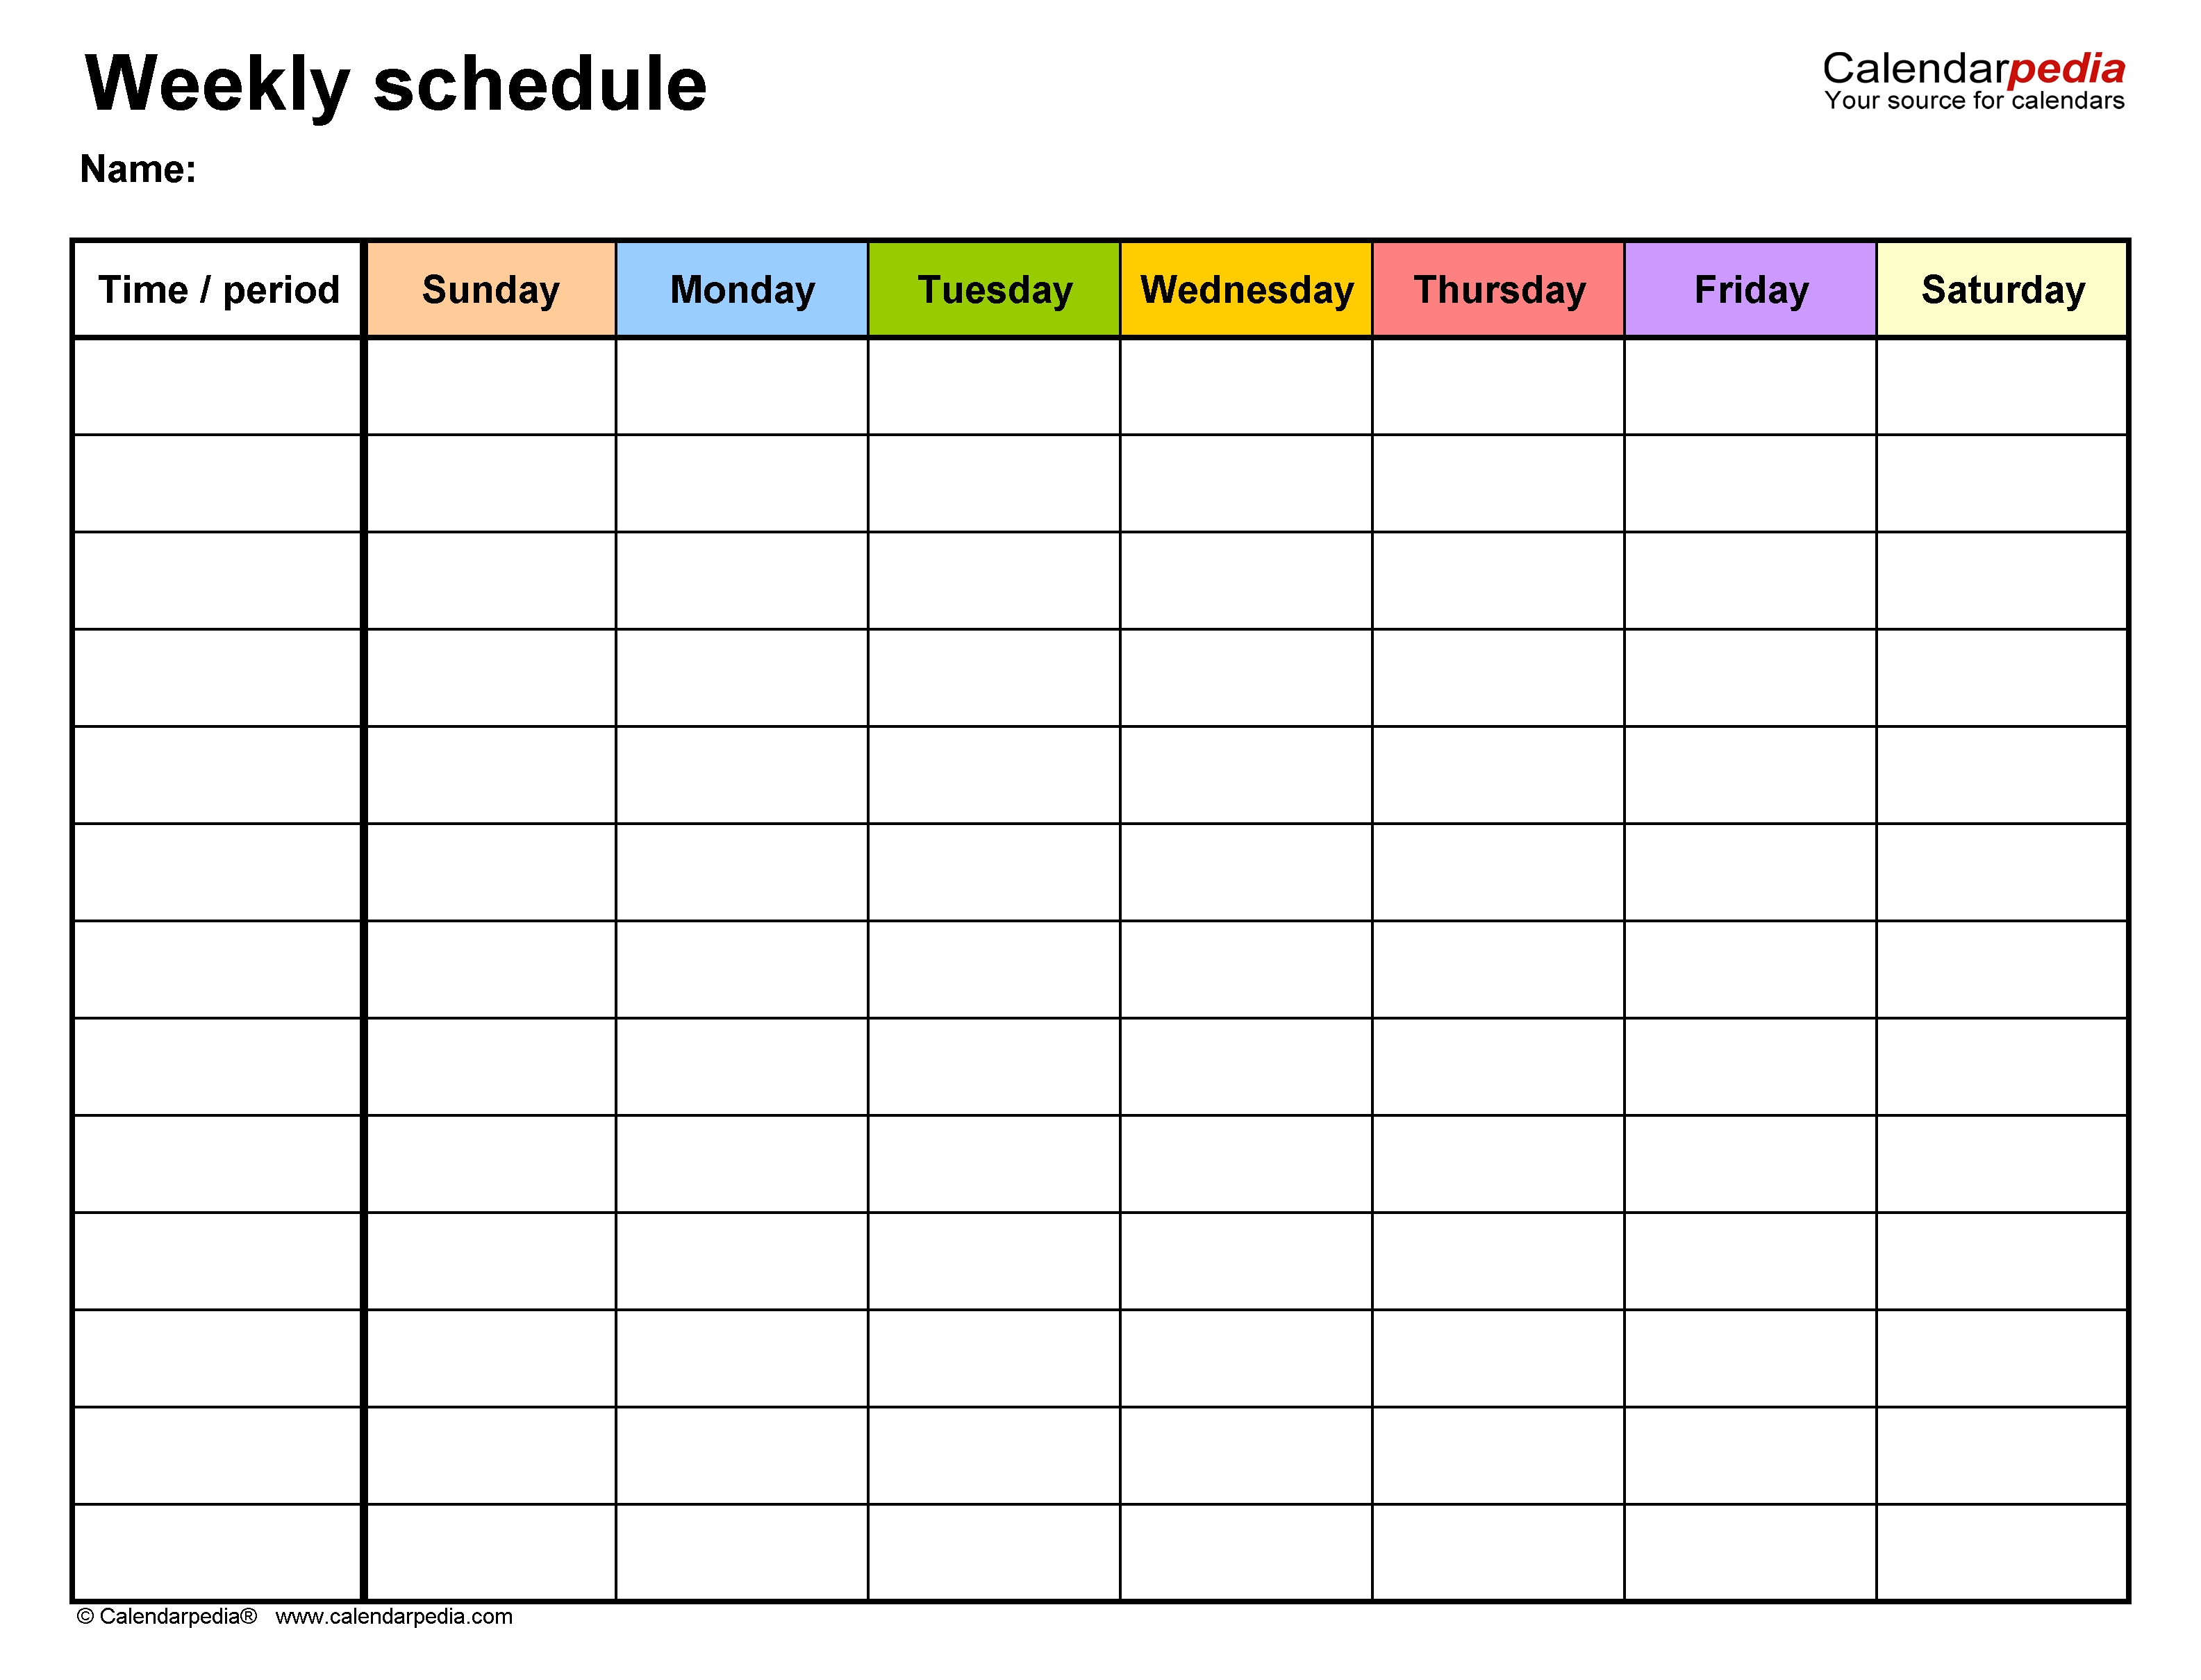 Free Weekly Schedule Templates For Word - 18 Templates 7 Day Calendar Template